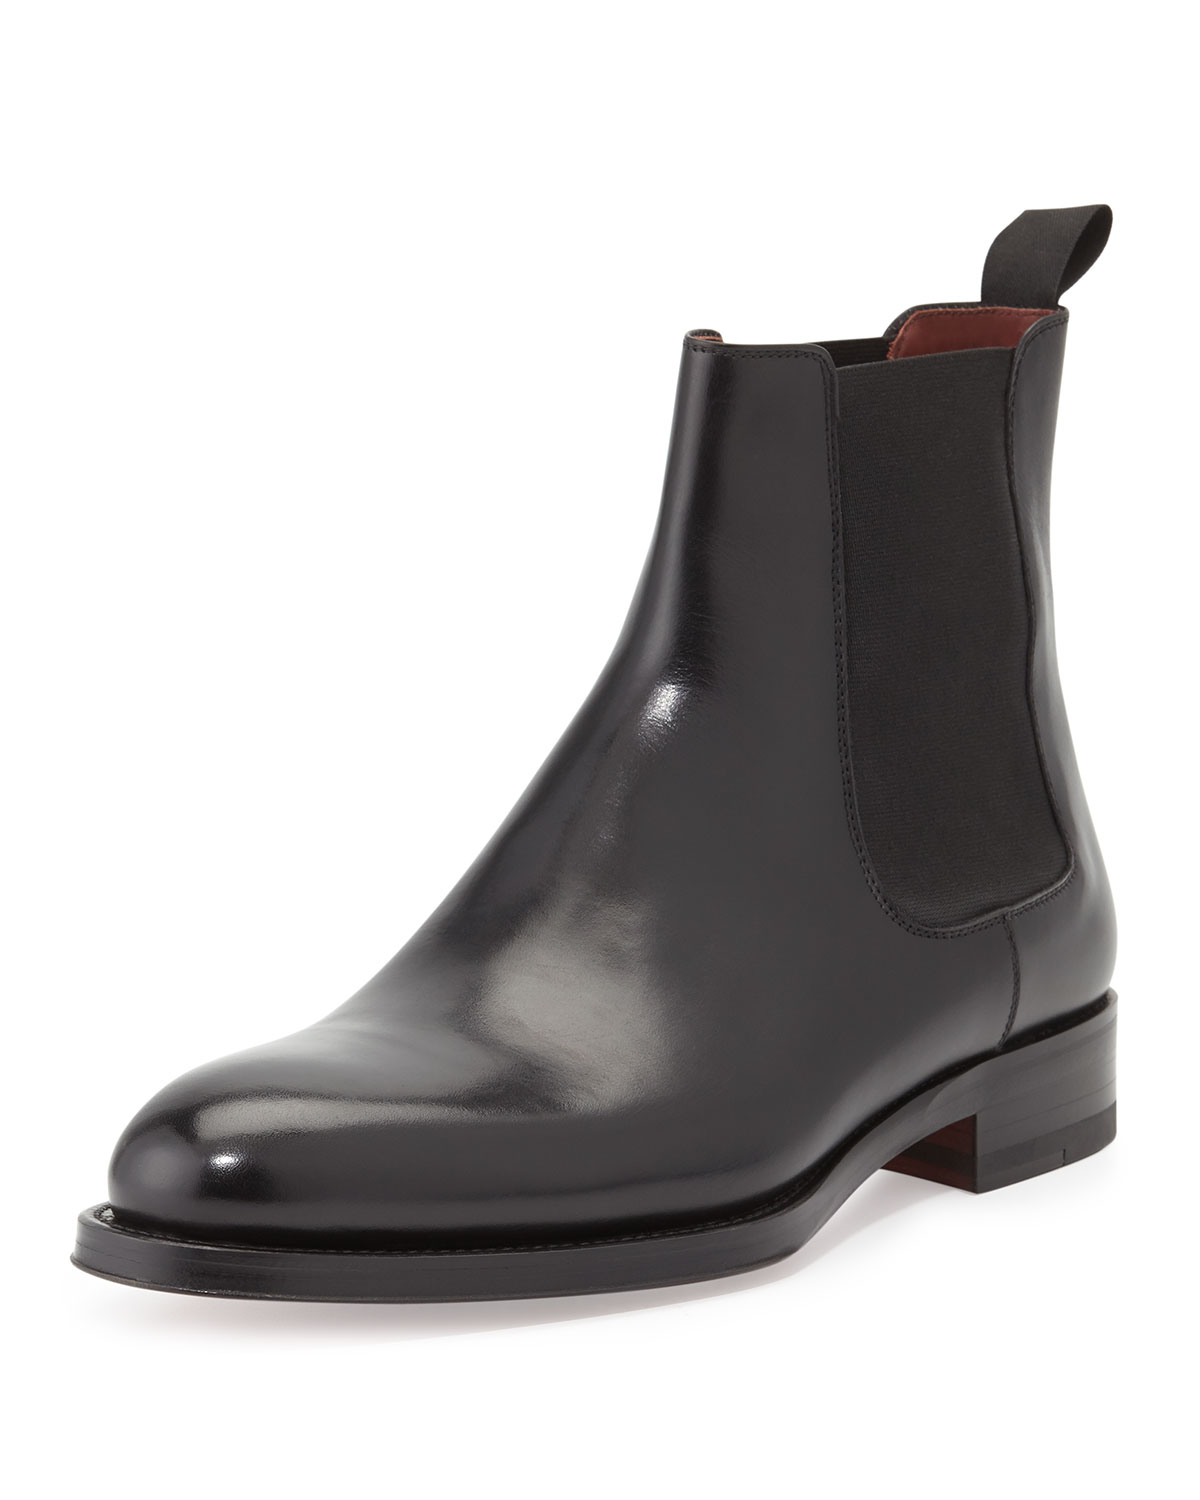 neiman marcus polished leather chelsea boot in black for. Black Bedroom Furniture Sets. Home Design Ideas